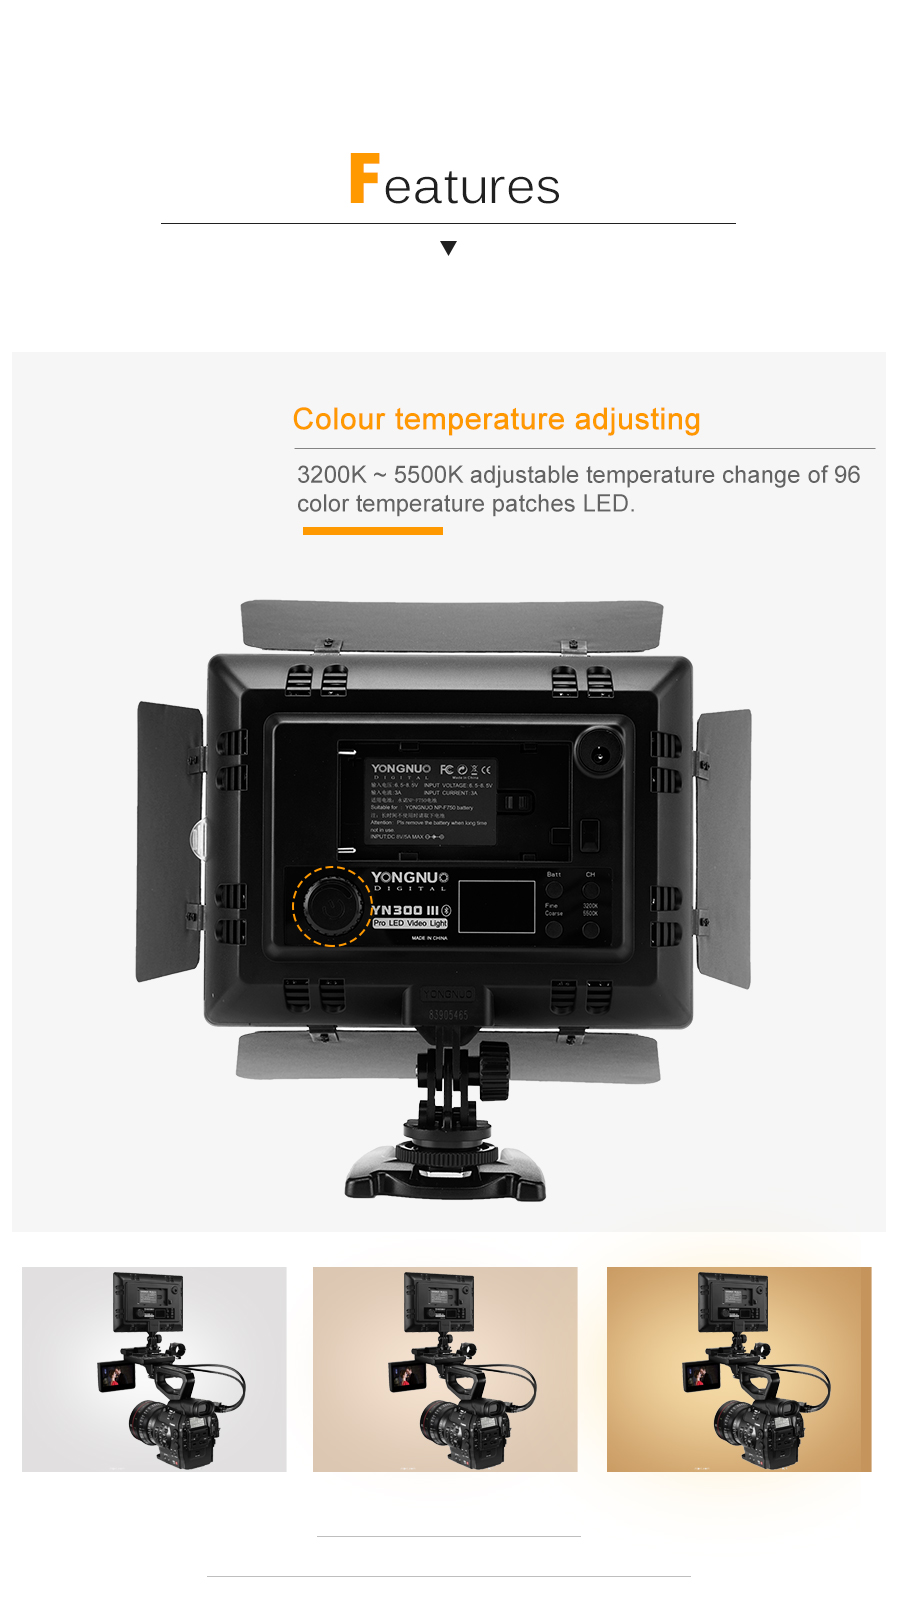 Hf61c4d2160084254bc2a1cca507dedbec Yongnuo YN300 III YN300III 3200k-5500K CRI95 Camera Photo LED Video Light Optional with AC Power Adapter + NP770 Battery KIT